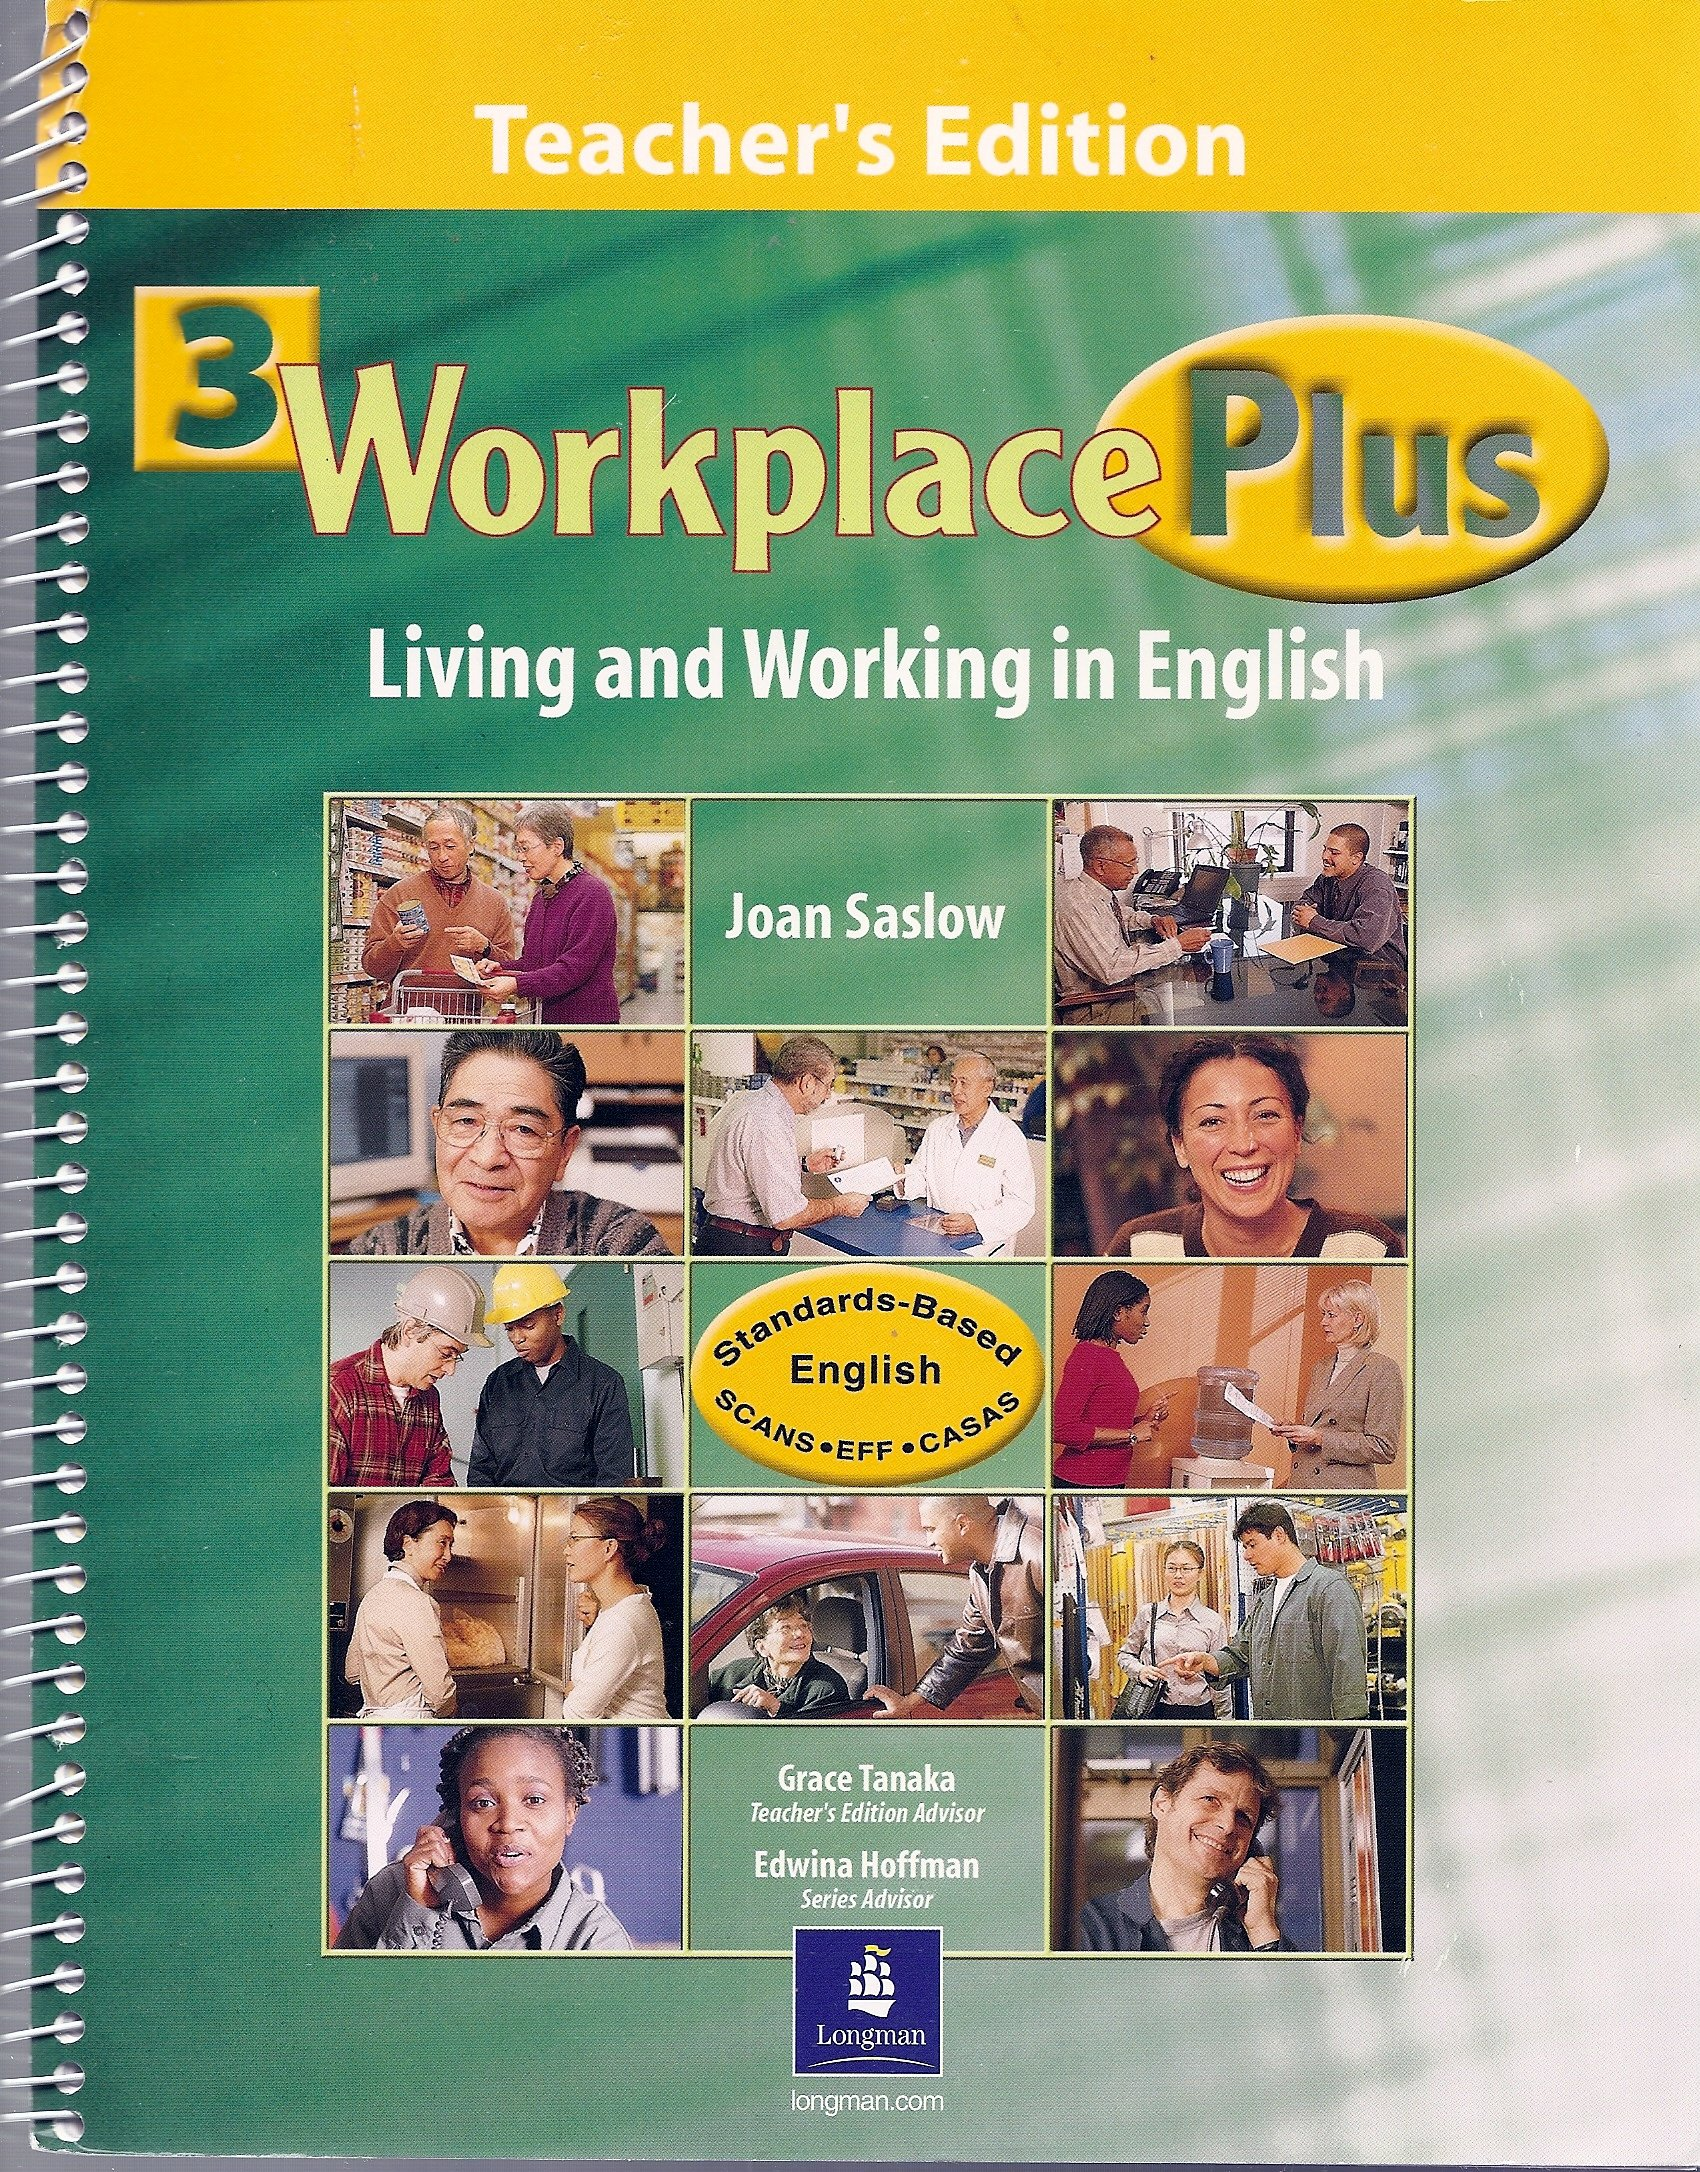 Workplace Plus 3 Teacher's Edition: Living and Working in English pdf